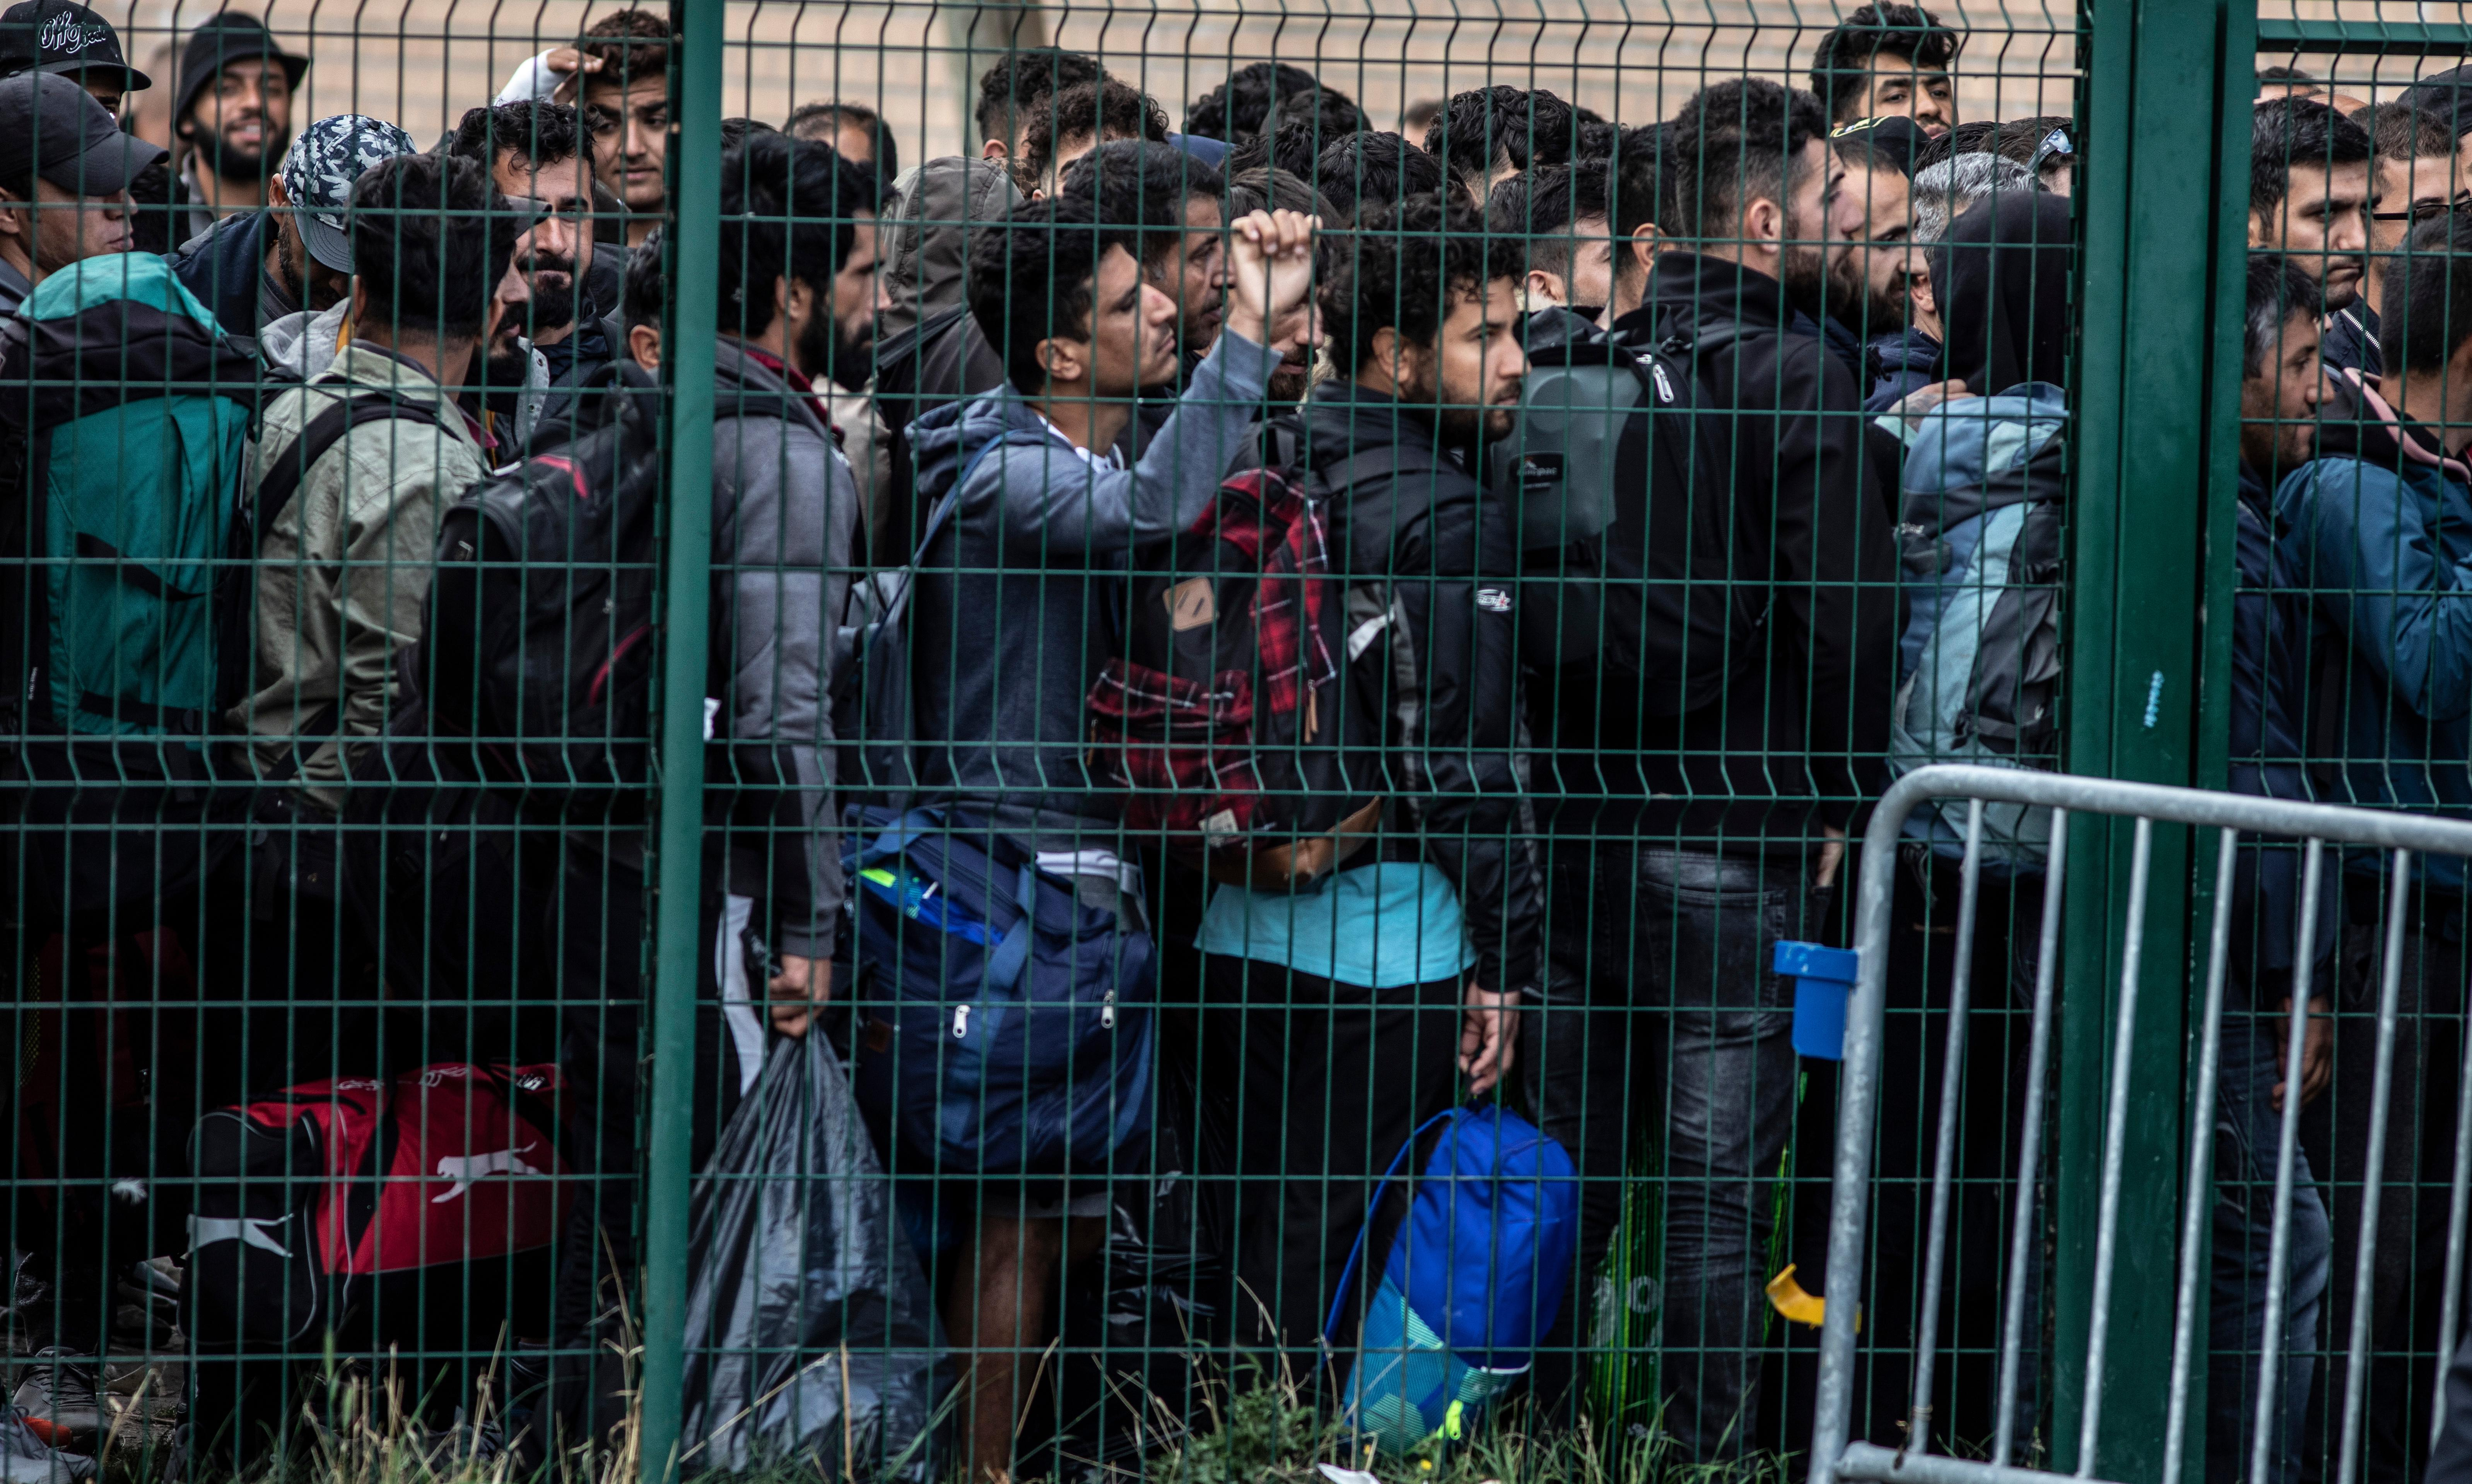 French police clear 'security hazard' migrant camp